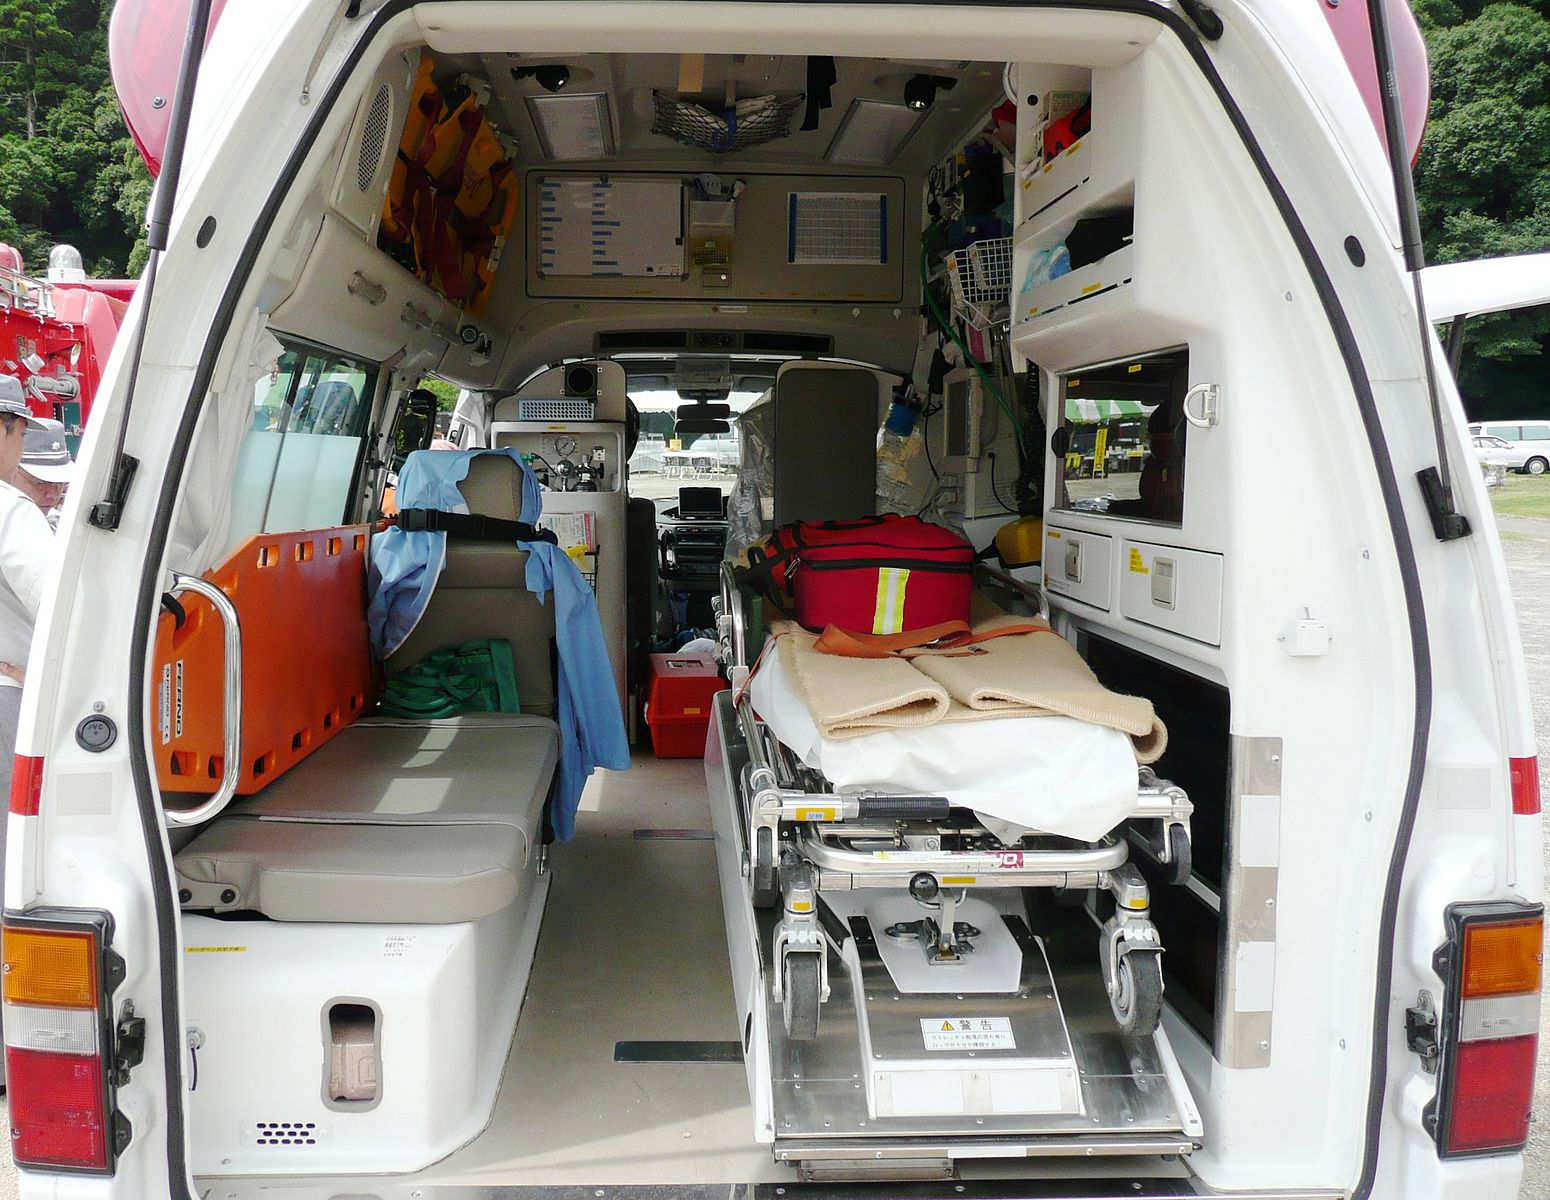 The inside of an ambulance.